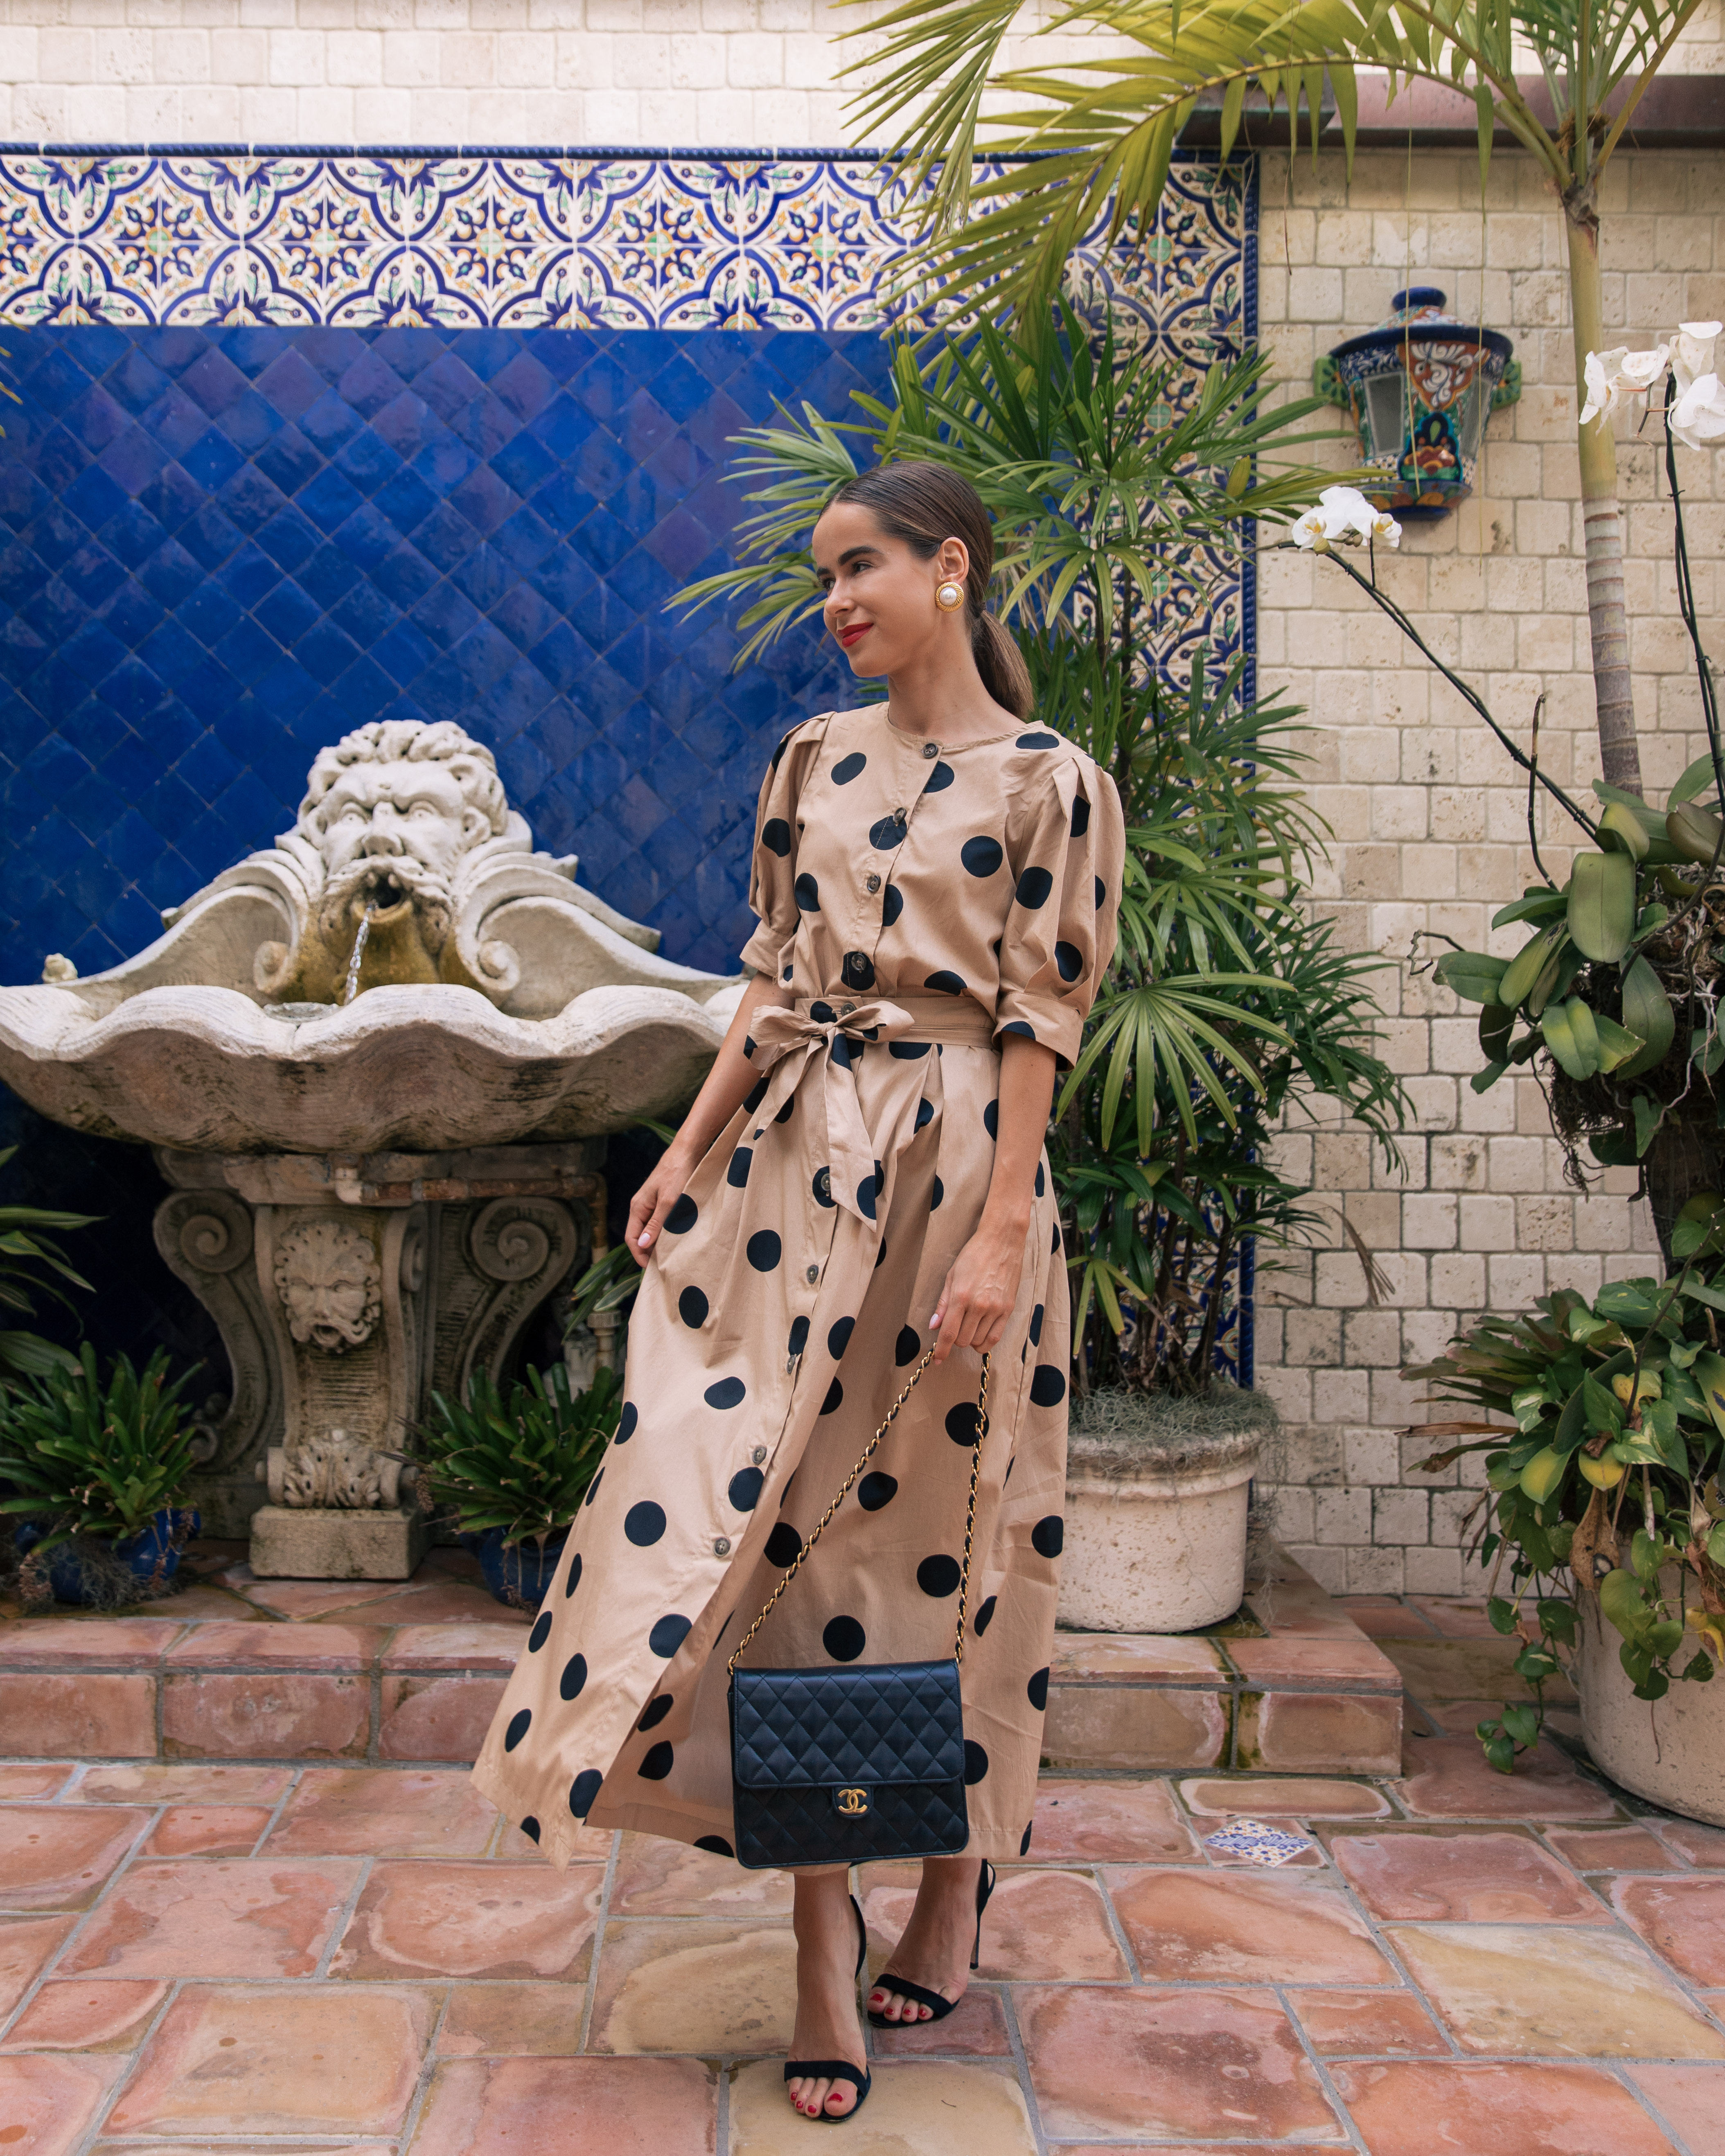 Style Blogger Stephanie Hill from The Style Bungalow is Ready for a New Chanel